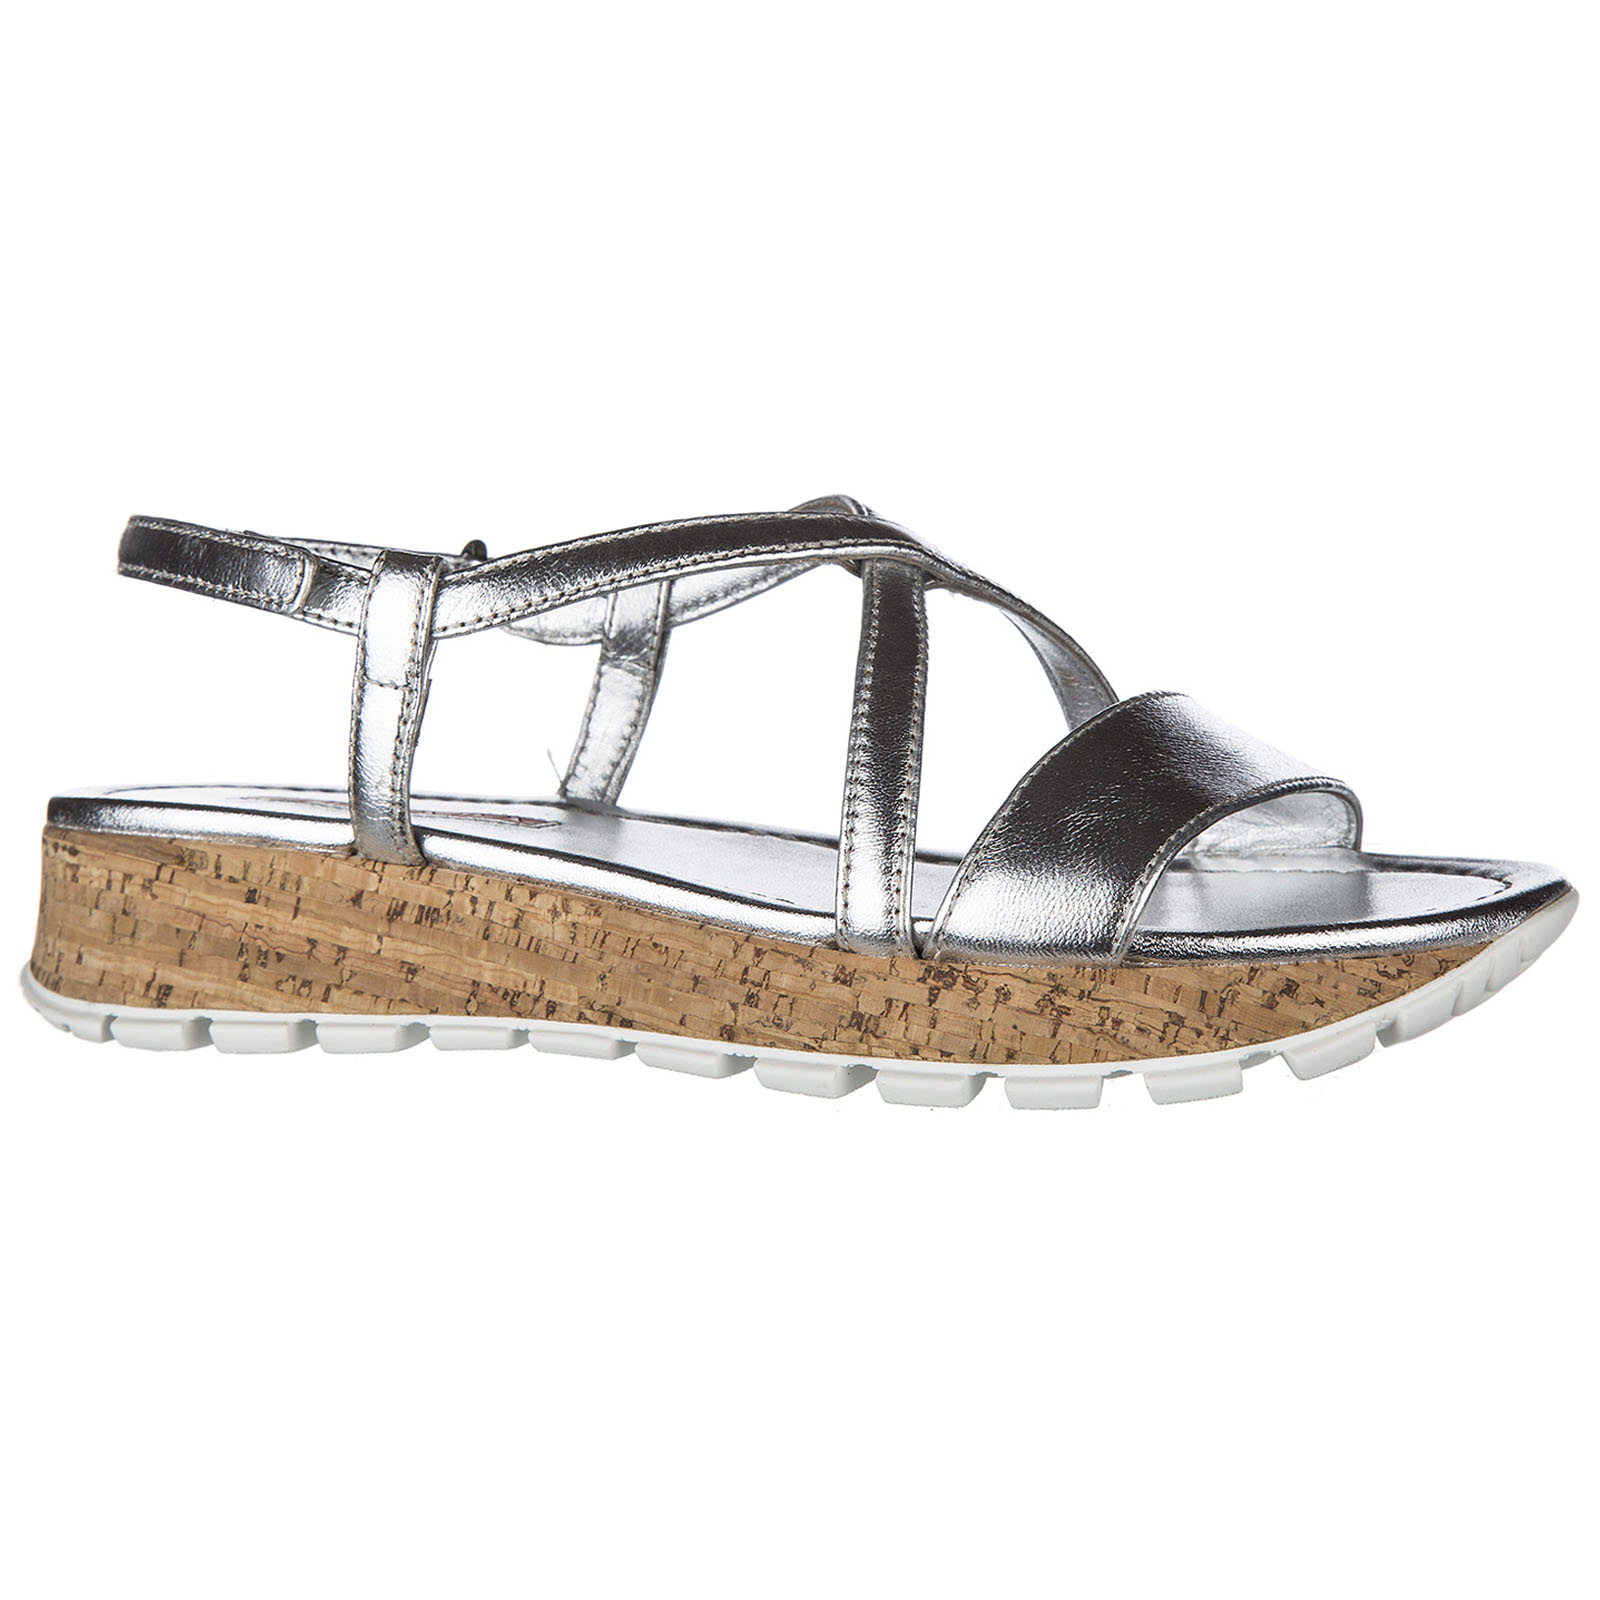 Women's leather sandals  nappa